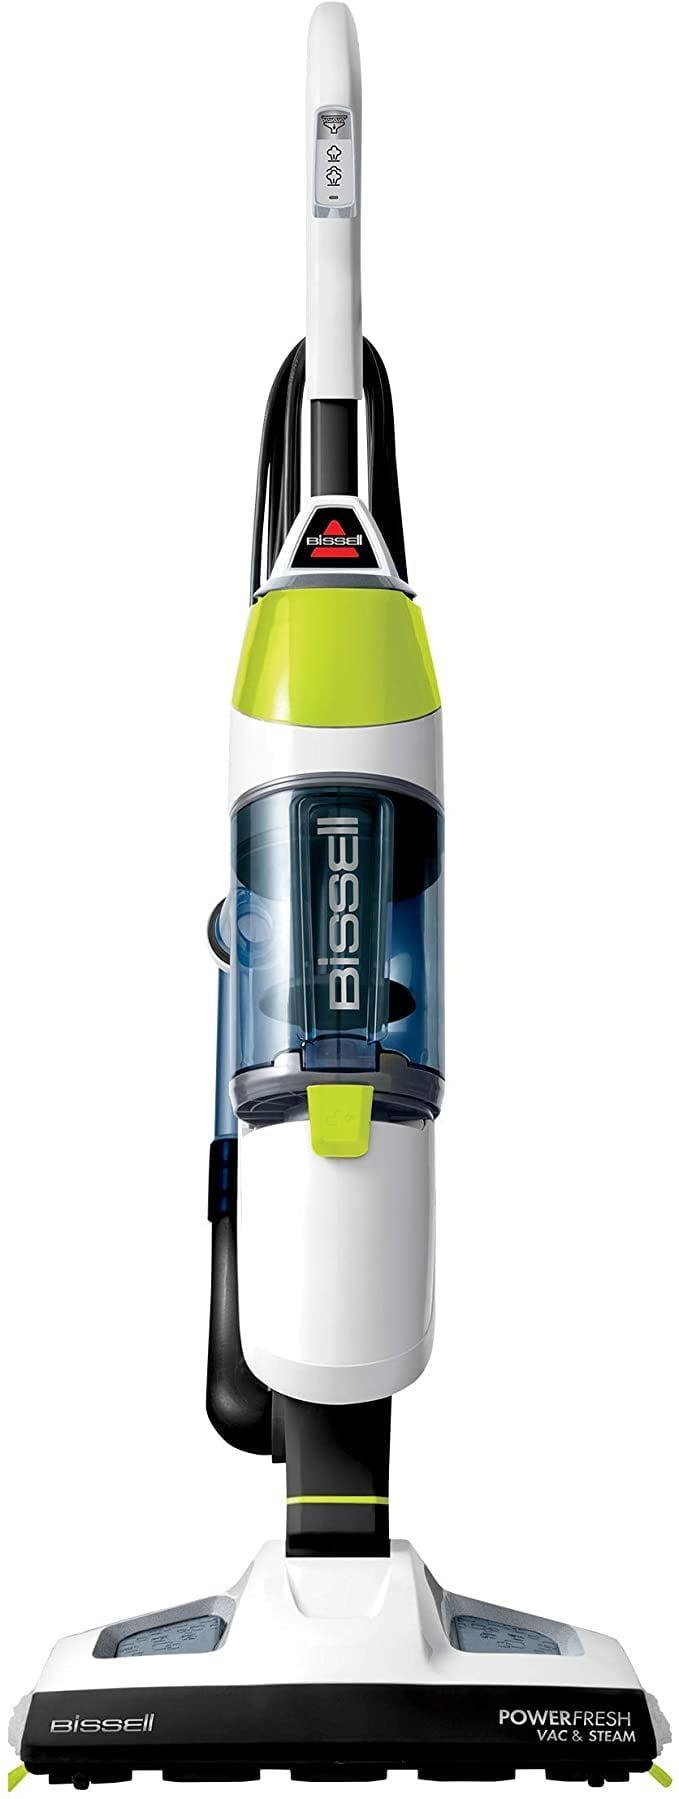 <p><span>Bissell PowerFresh Vac &amp; Steam All-in-One Vacuum and Steam Mop</span> ($150, originally $180)</p>